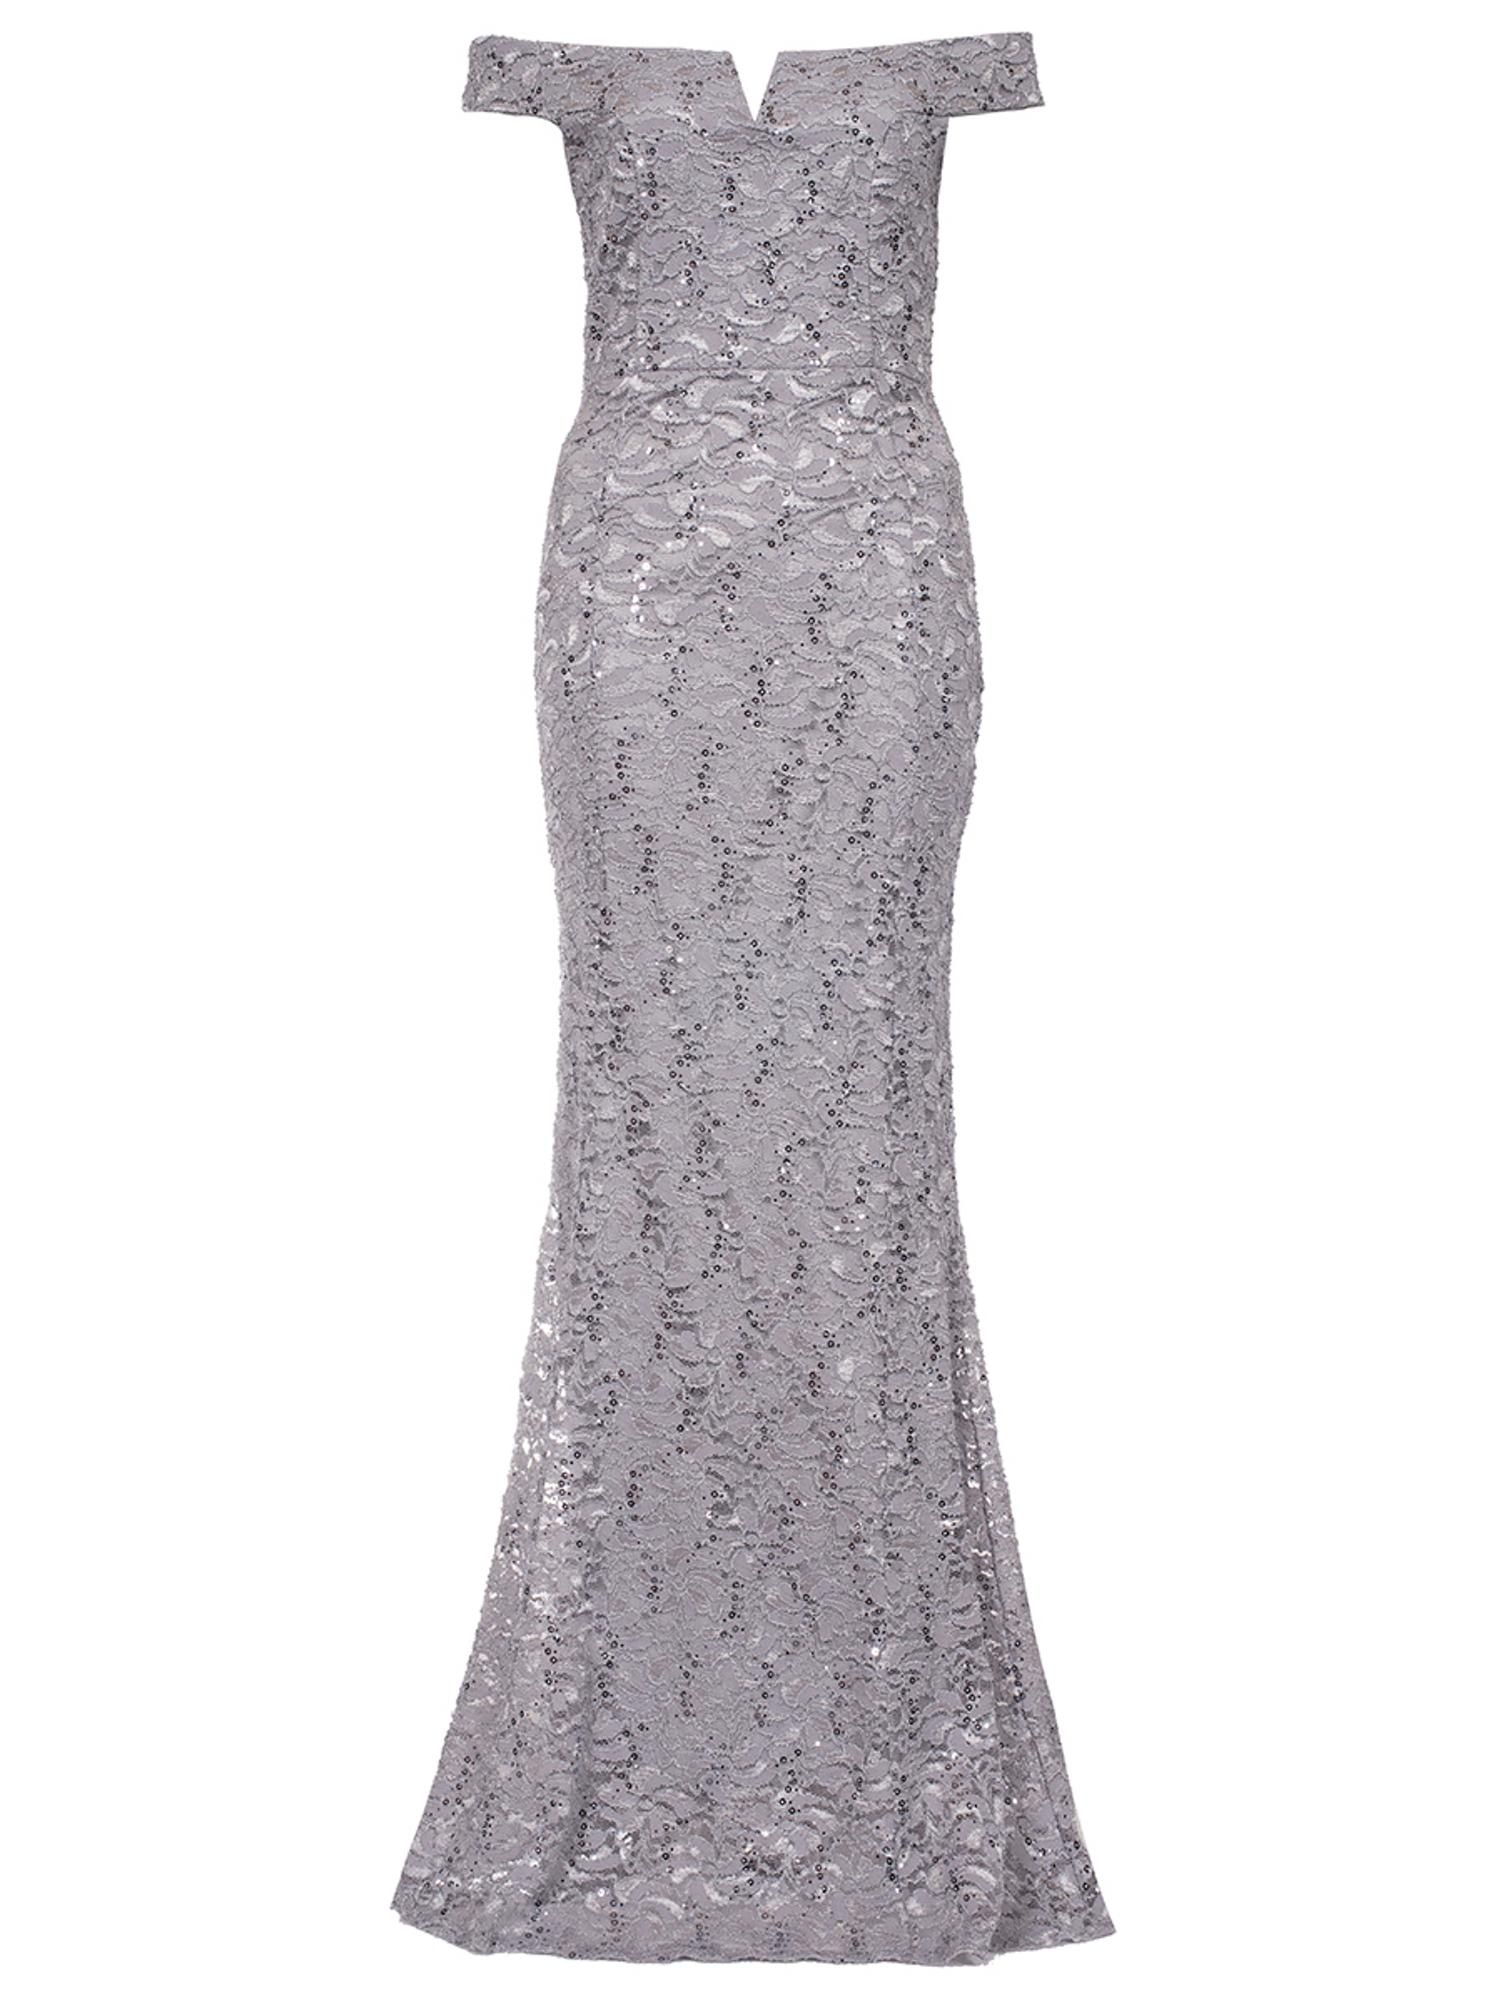 Quiz black lace dress  Take a closer look at the Quiz Silver Grey Sequin Bardot Fishtail